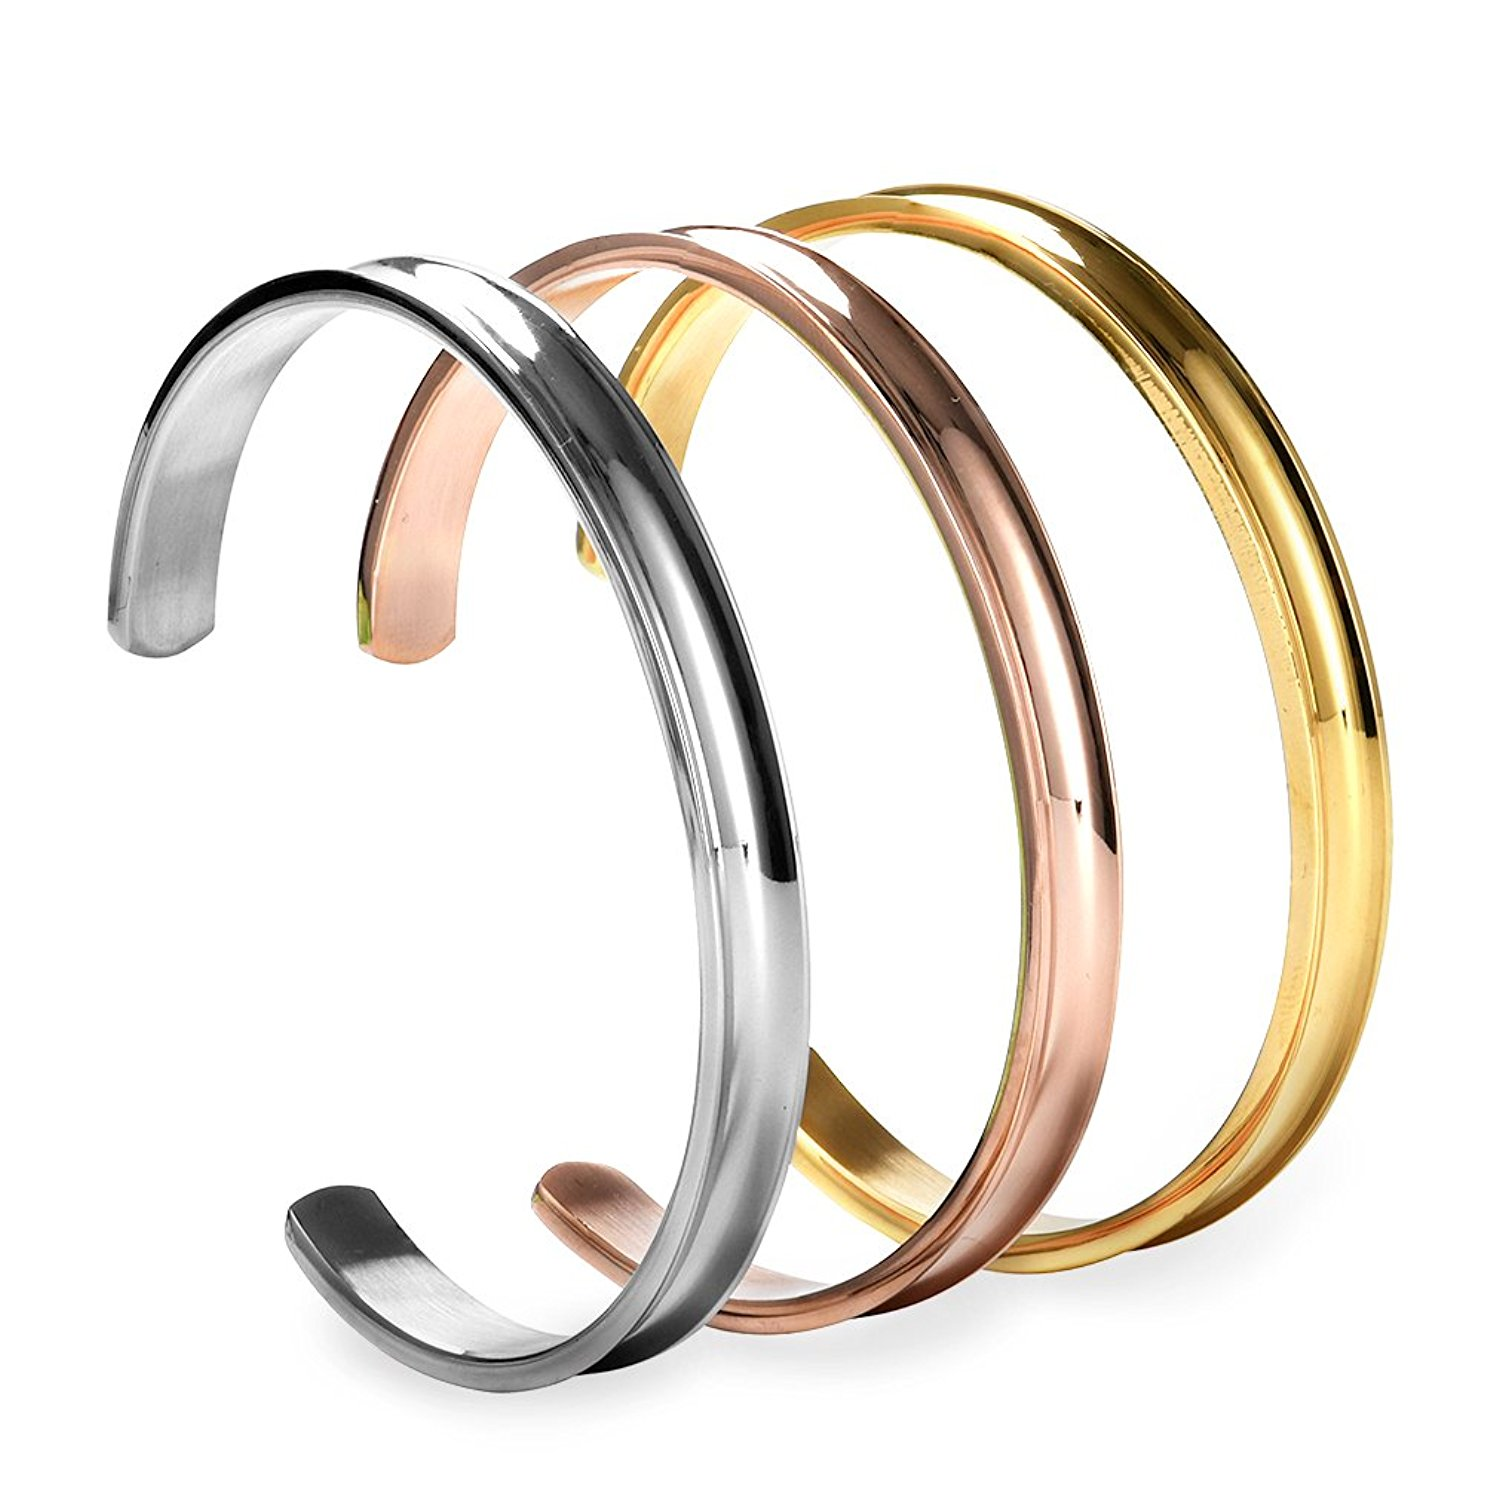 COCOStyle Stainless Steel Bracelet 3 Colors, Grooved Cuff Bangle for Women Girls